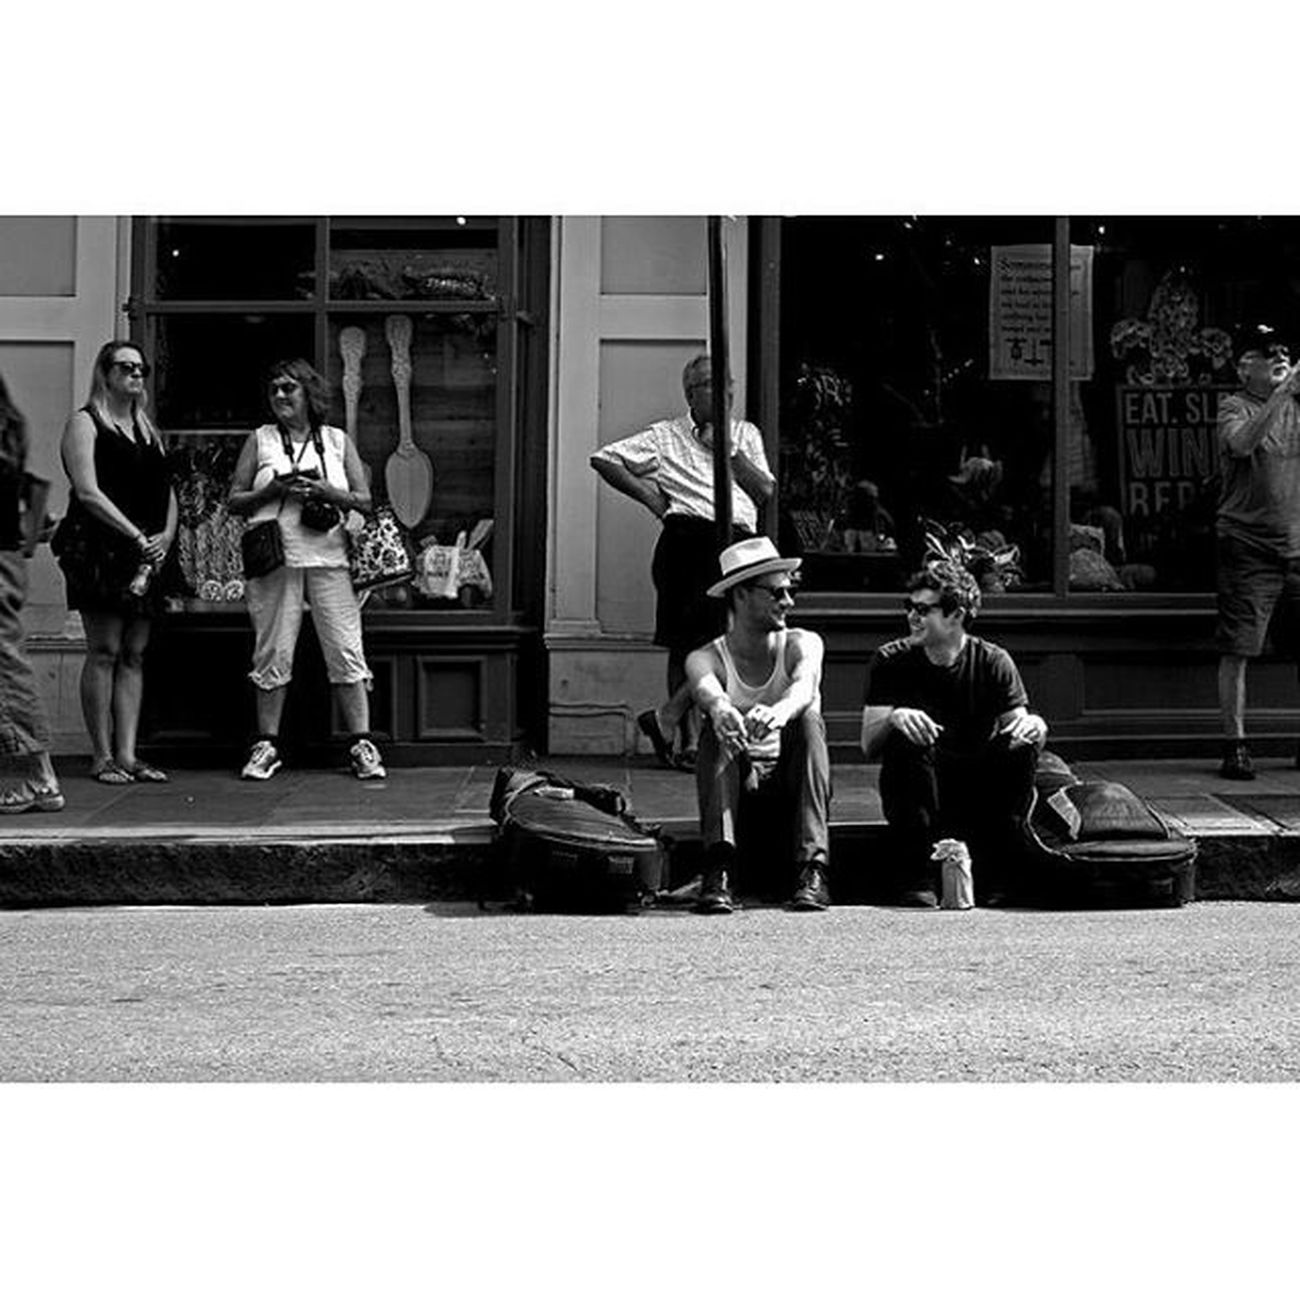 Musicians listen to Musicians Neworleans NOLA Thisisneworleans Louisiana frenchquarter music streetportrait streetphotography blackandwhite bnw monochrome 35mm canon travel photooftheday